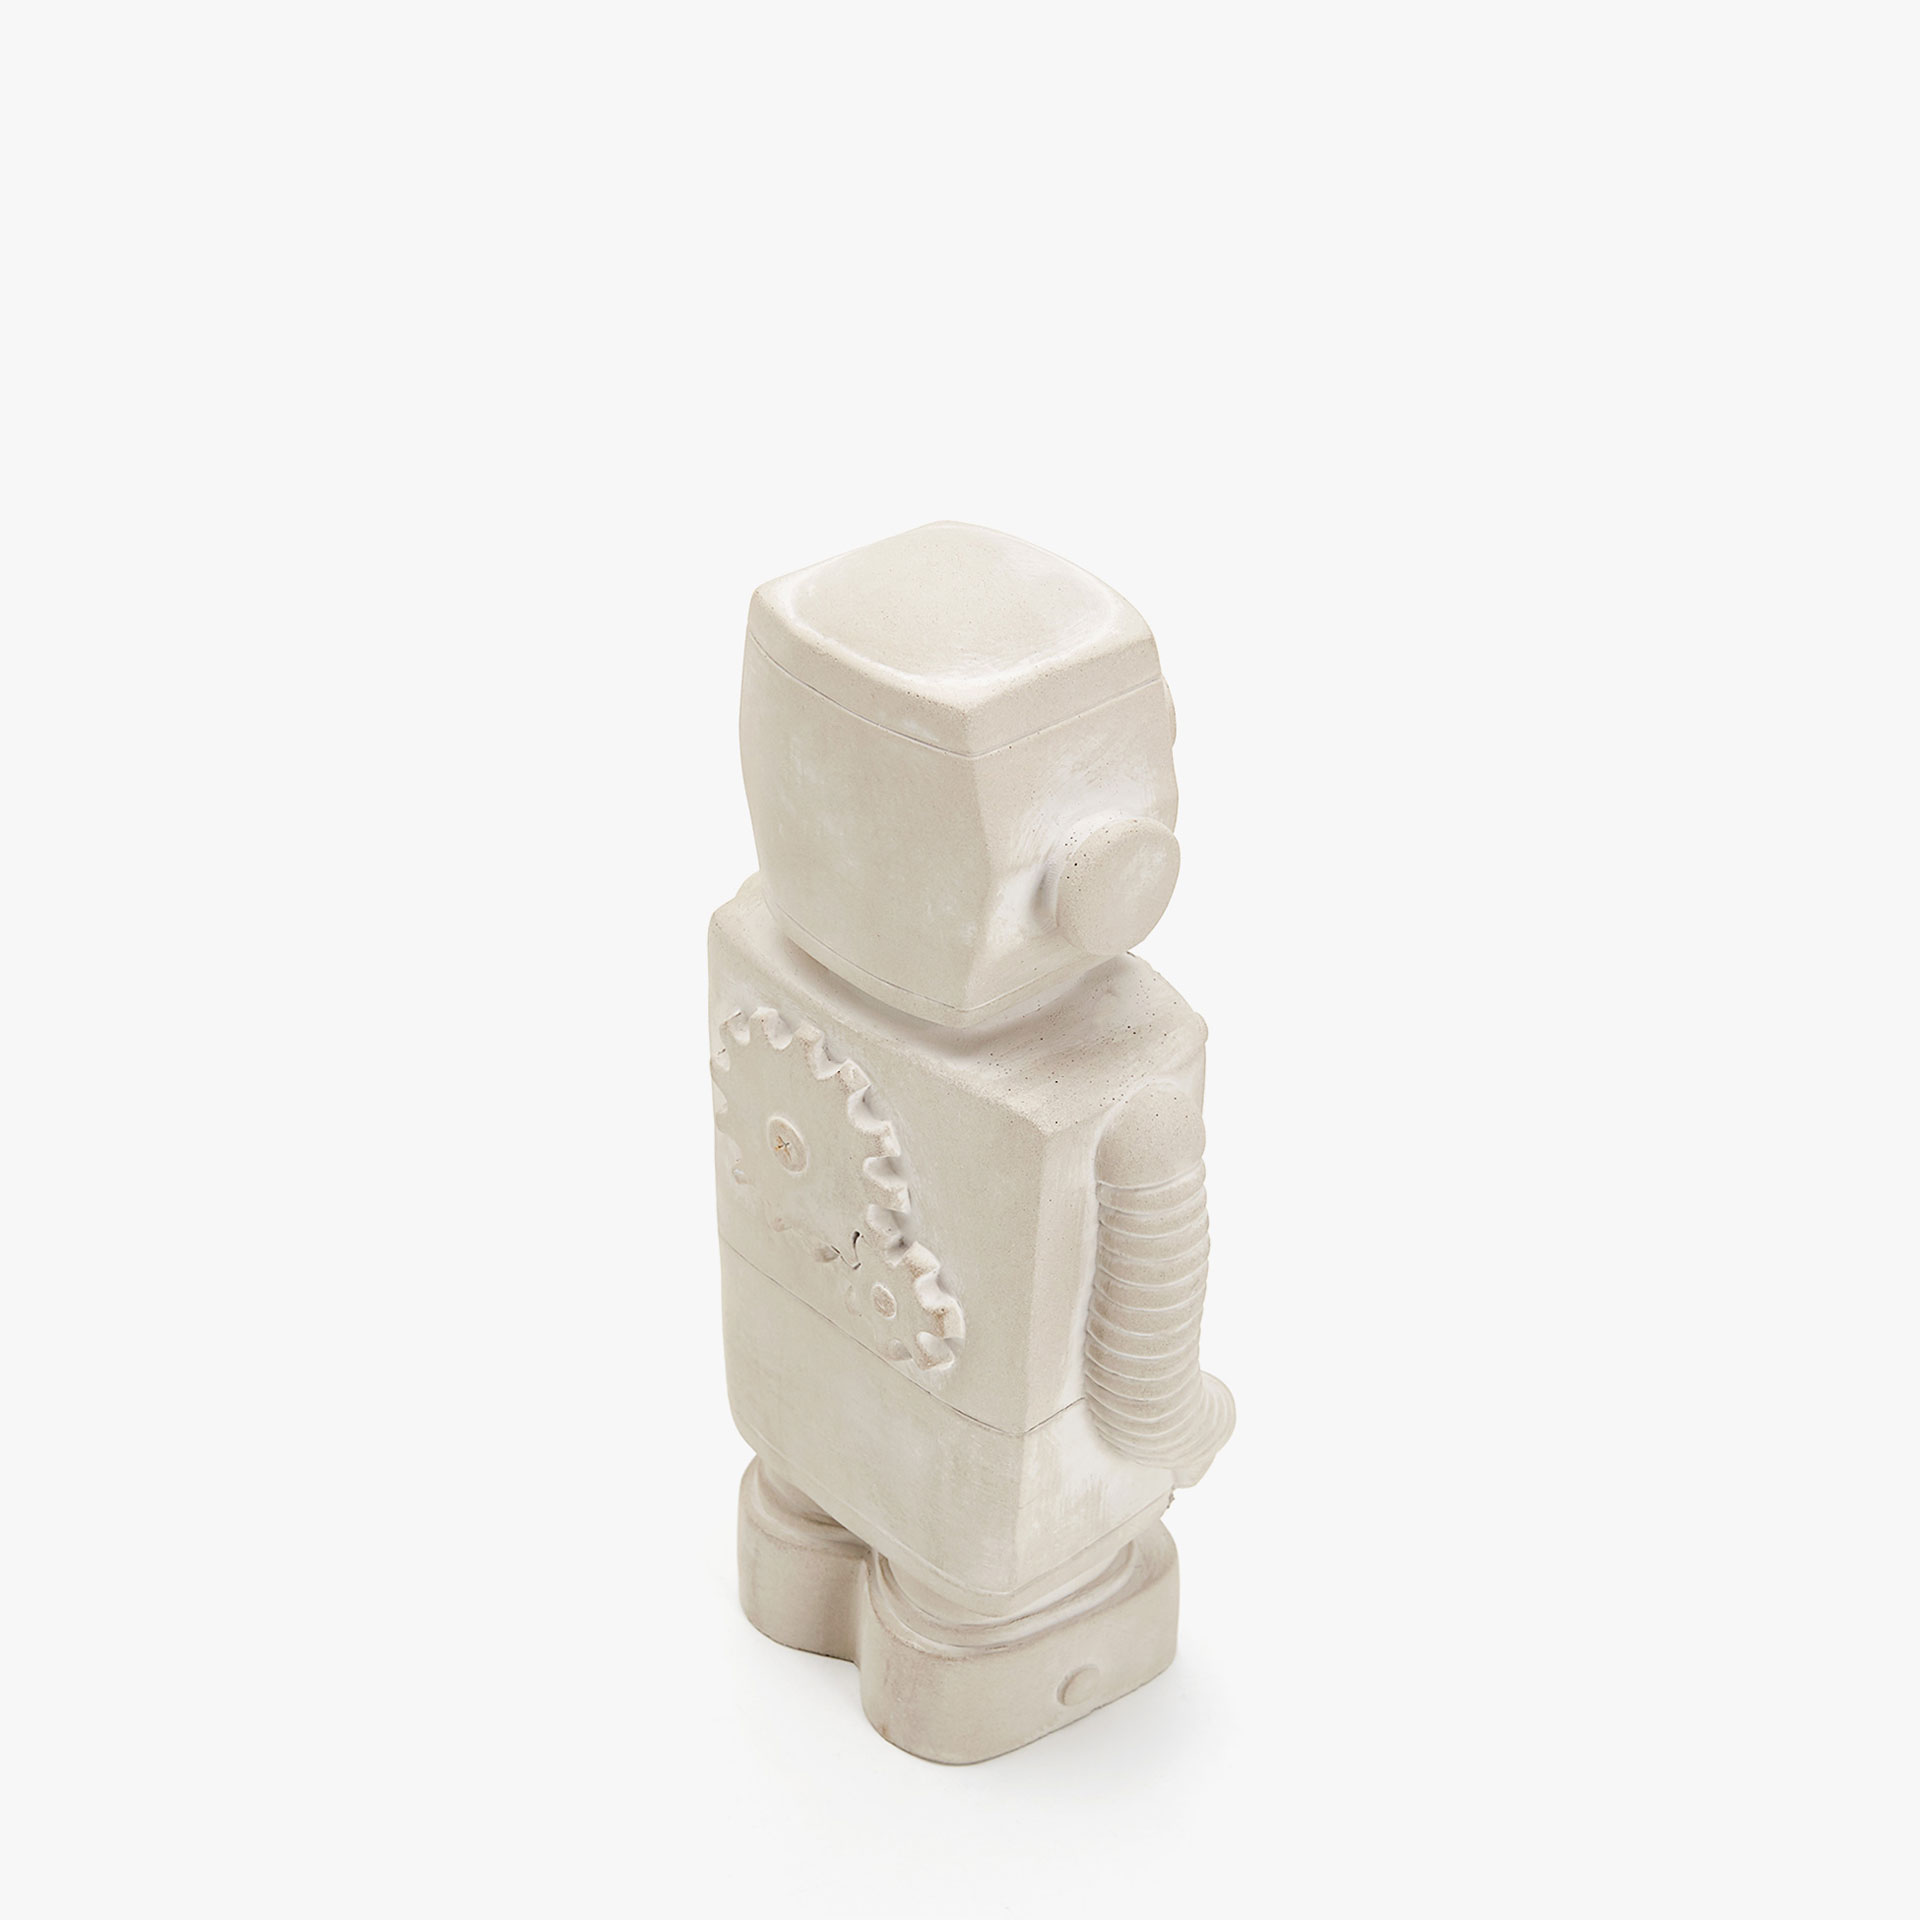 DECORATIVE ROBOT FIGURE - DECOR ACCESSORIES - DECORATION - KIDS ...